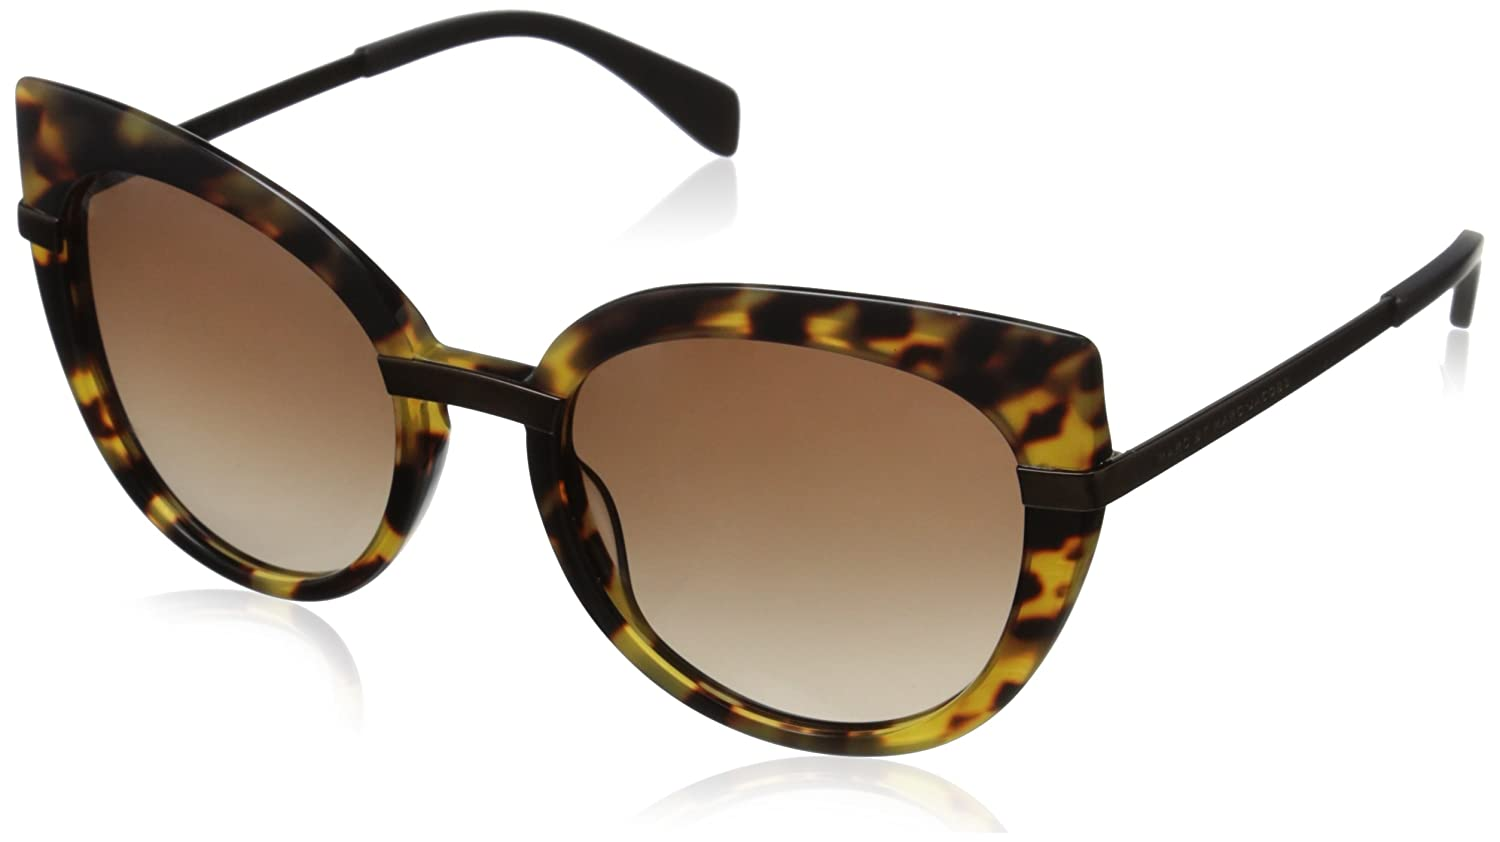 Marc by Marc Jacobs Sonnenbrille Mmj 489/S Jd Spotted Havana Brow, 54